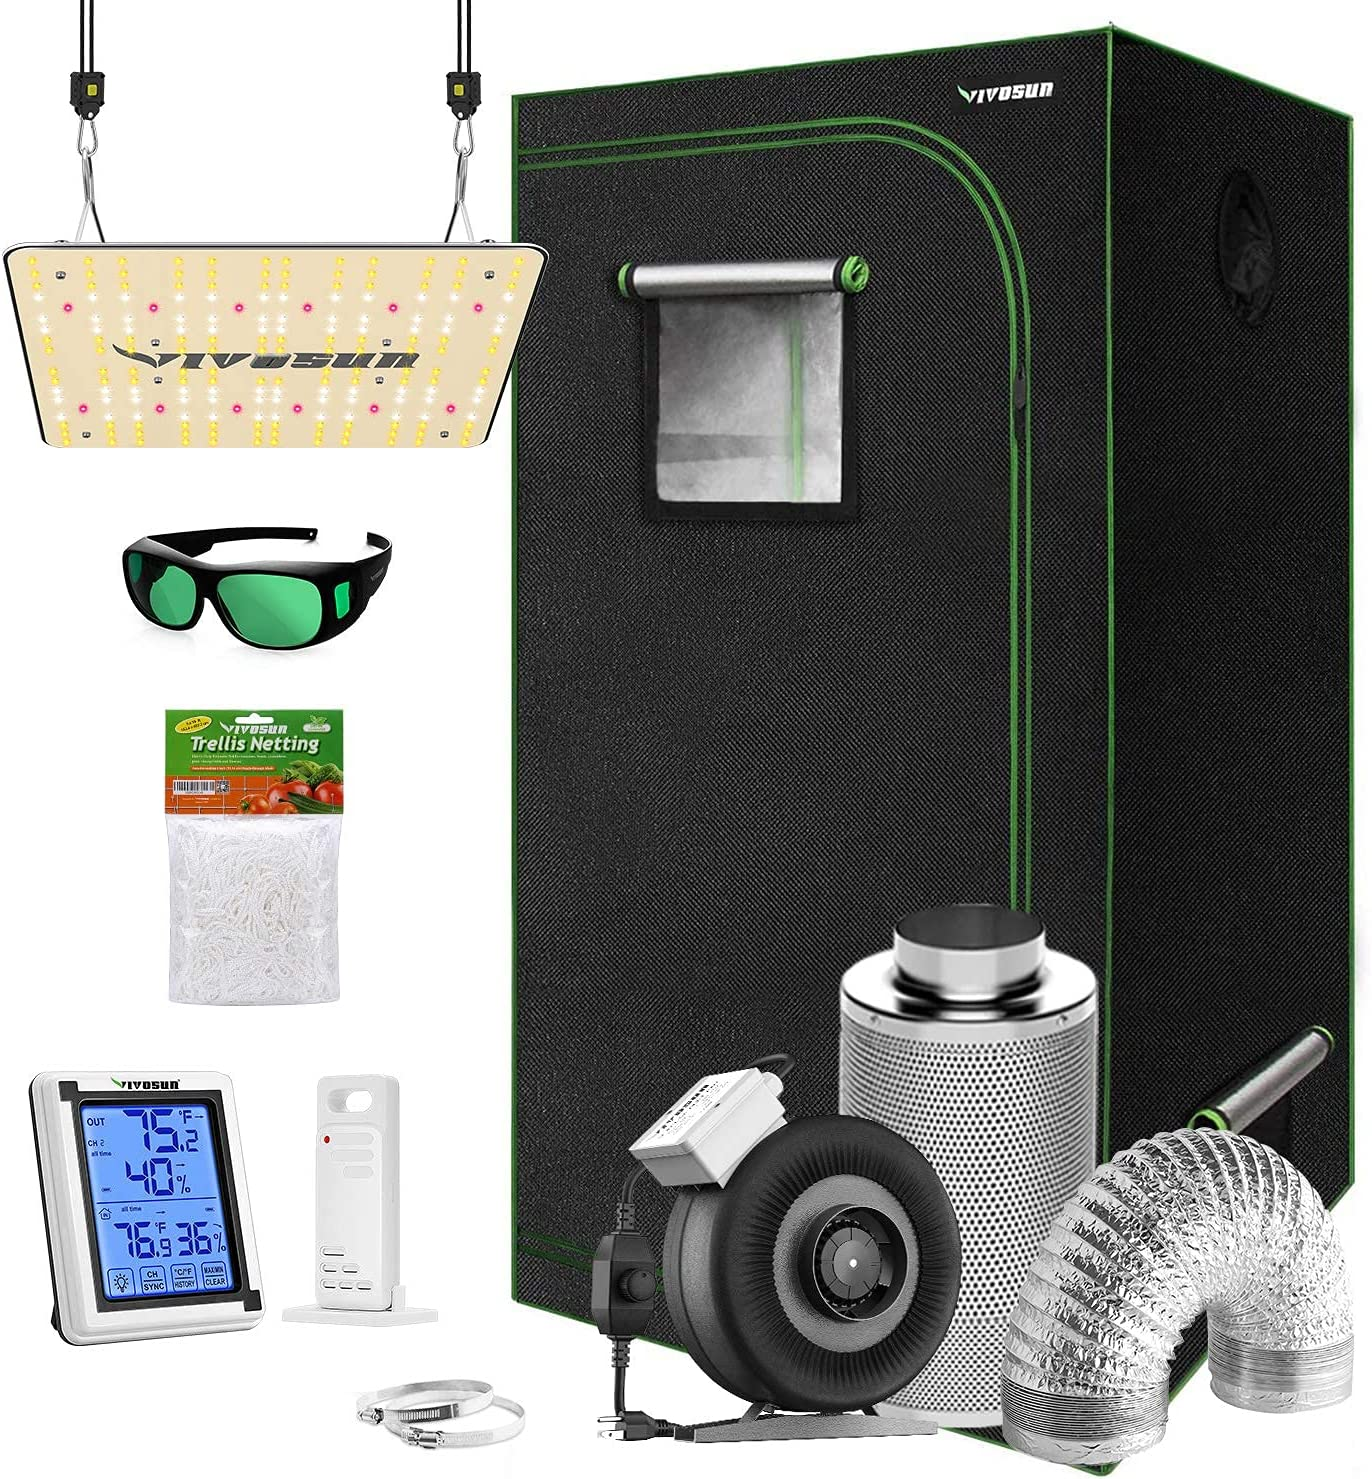 VIVOSUN Grow Max 59% OFF Tent Complete Kit with Growing 36